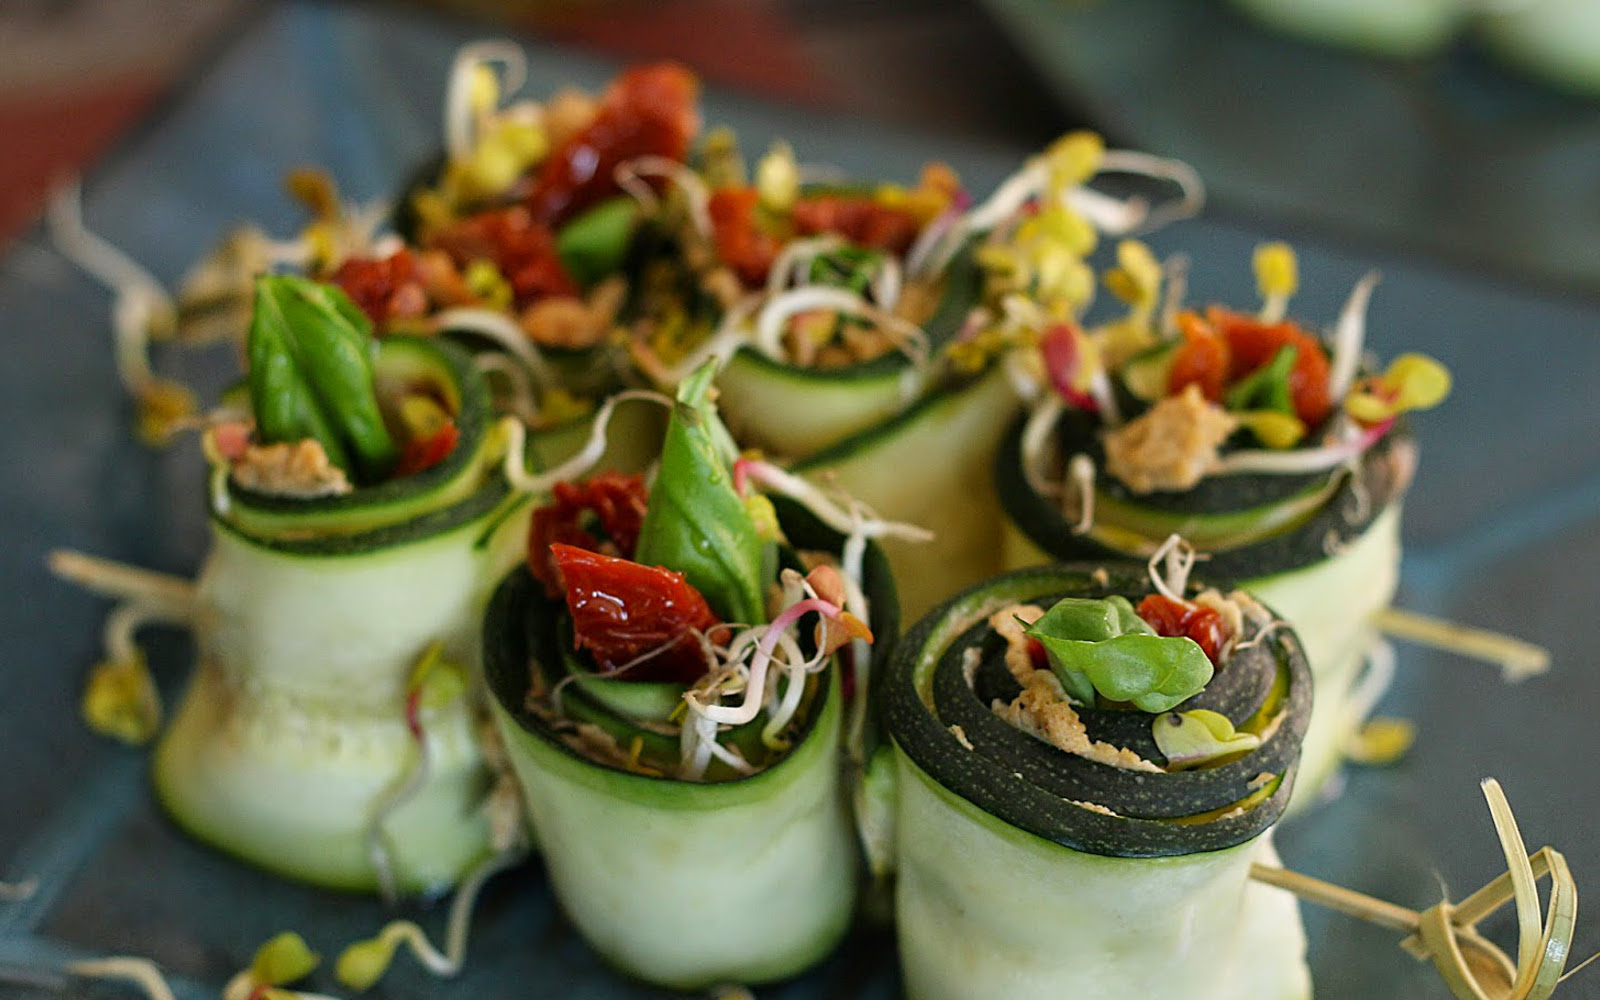 Zucchini Rolls With Sunflower Seed Pâté and Sun-dried Tomatoes